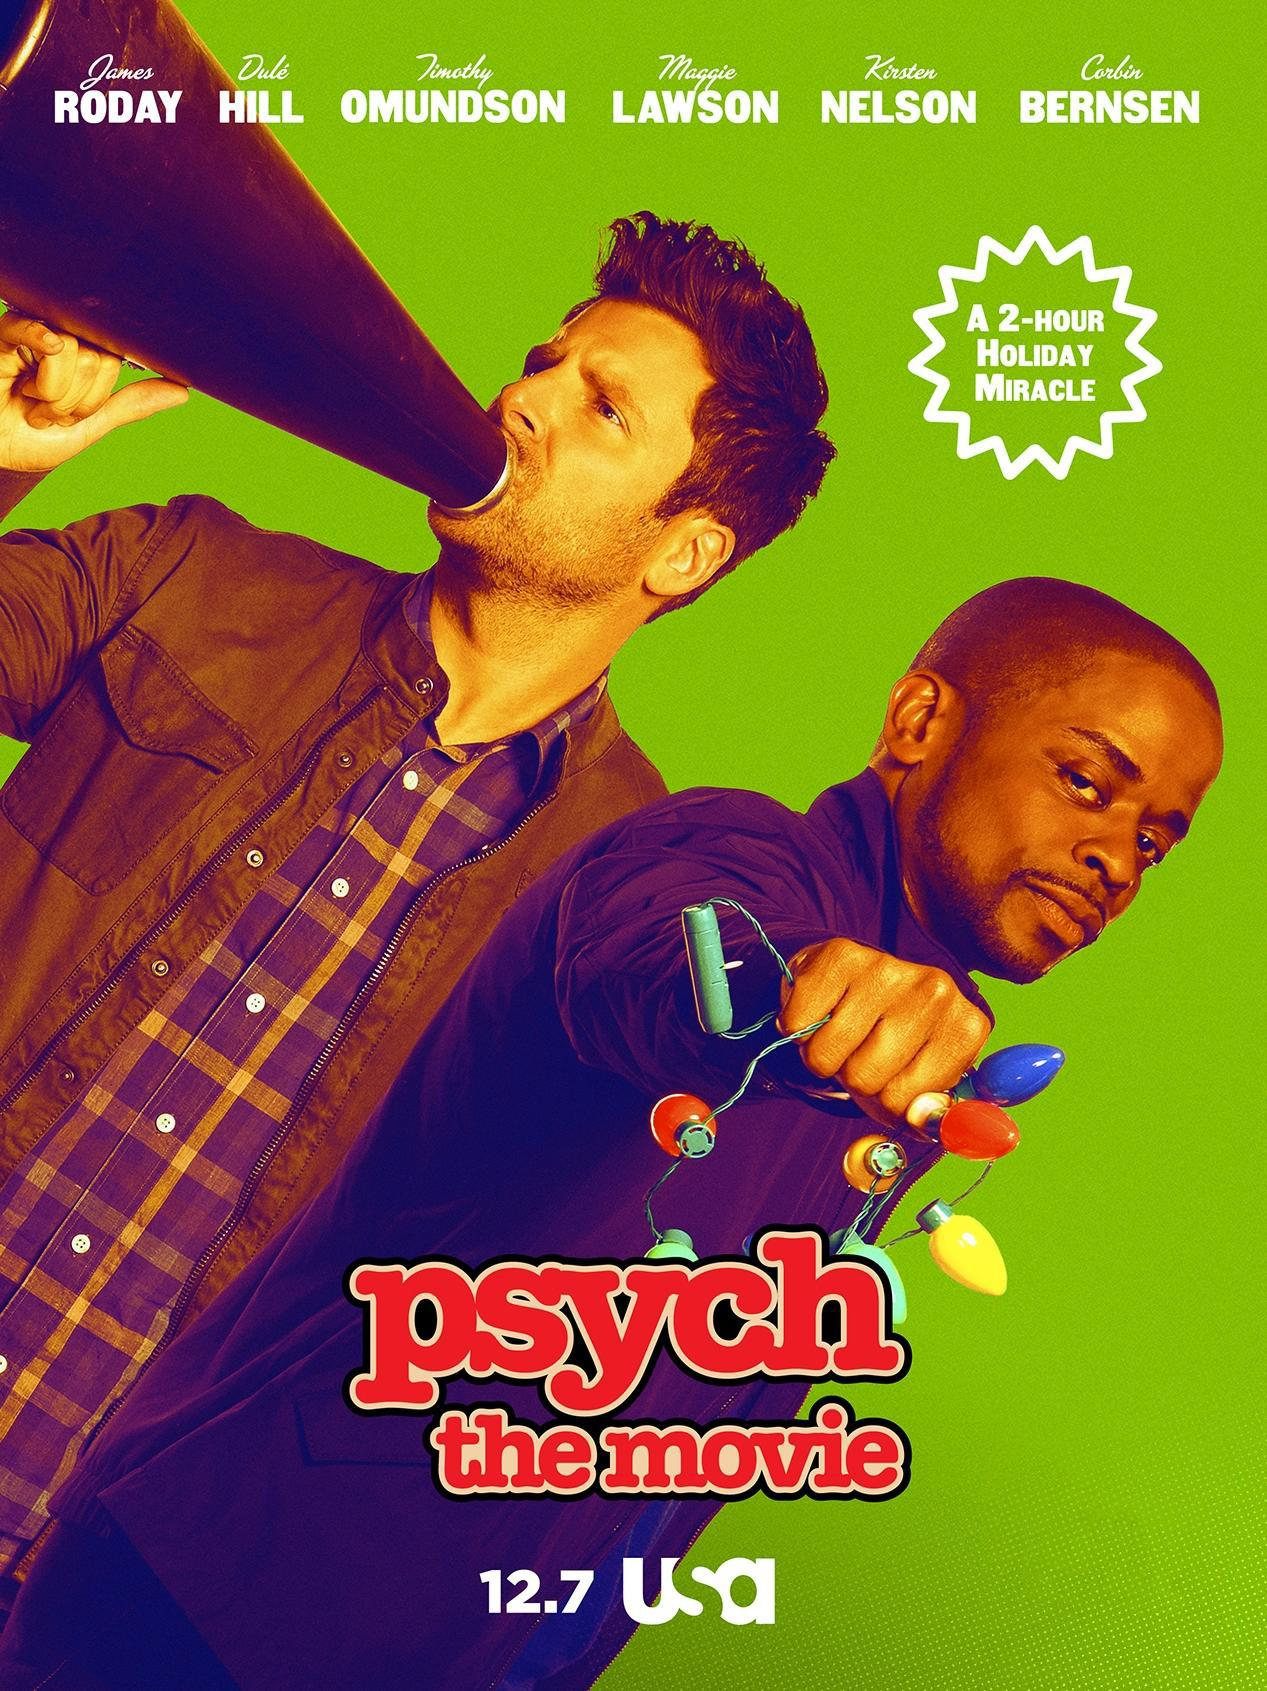 AIŠKIAREGYS. FILMAS (2017) / PSYCH THE MOVIE